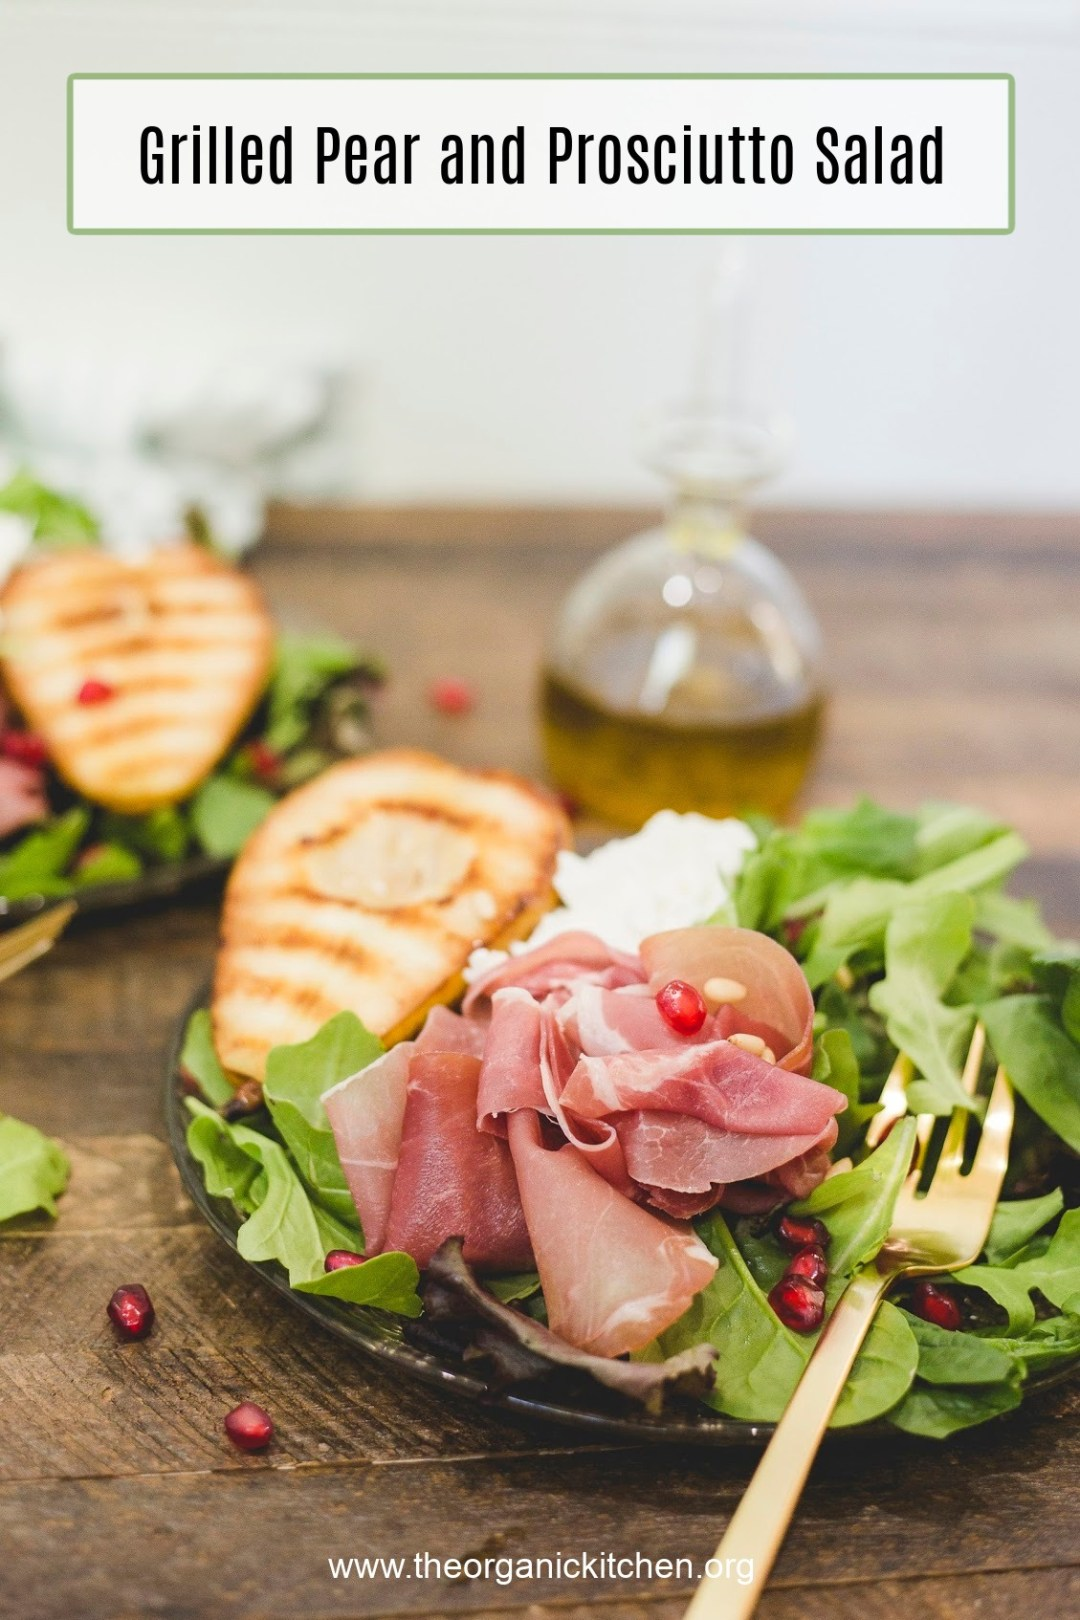 Grilled Pear and Prosciutto Salad garnished with pomegranate seeds on plate with gold fork